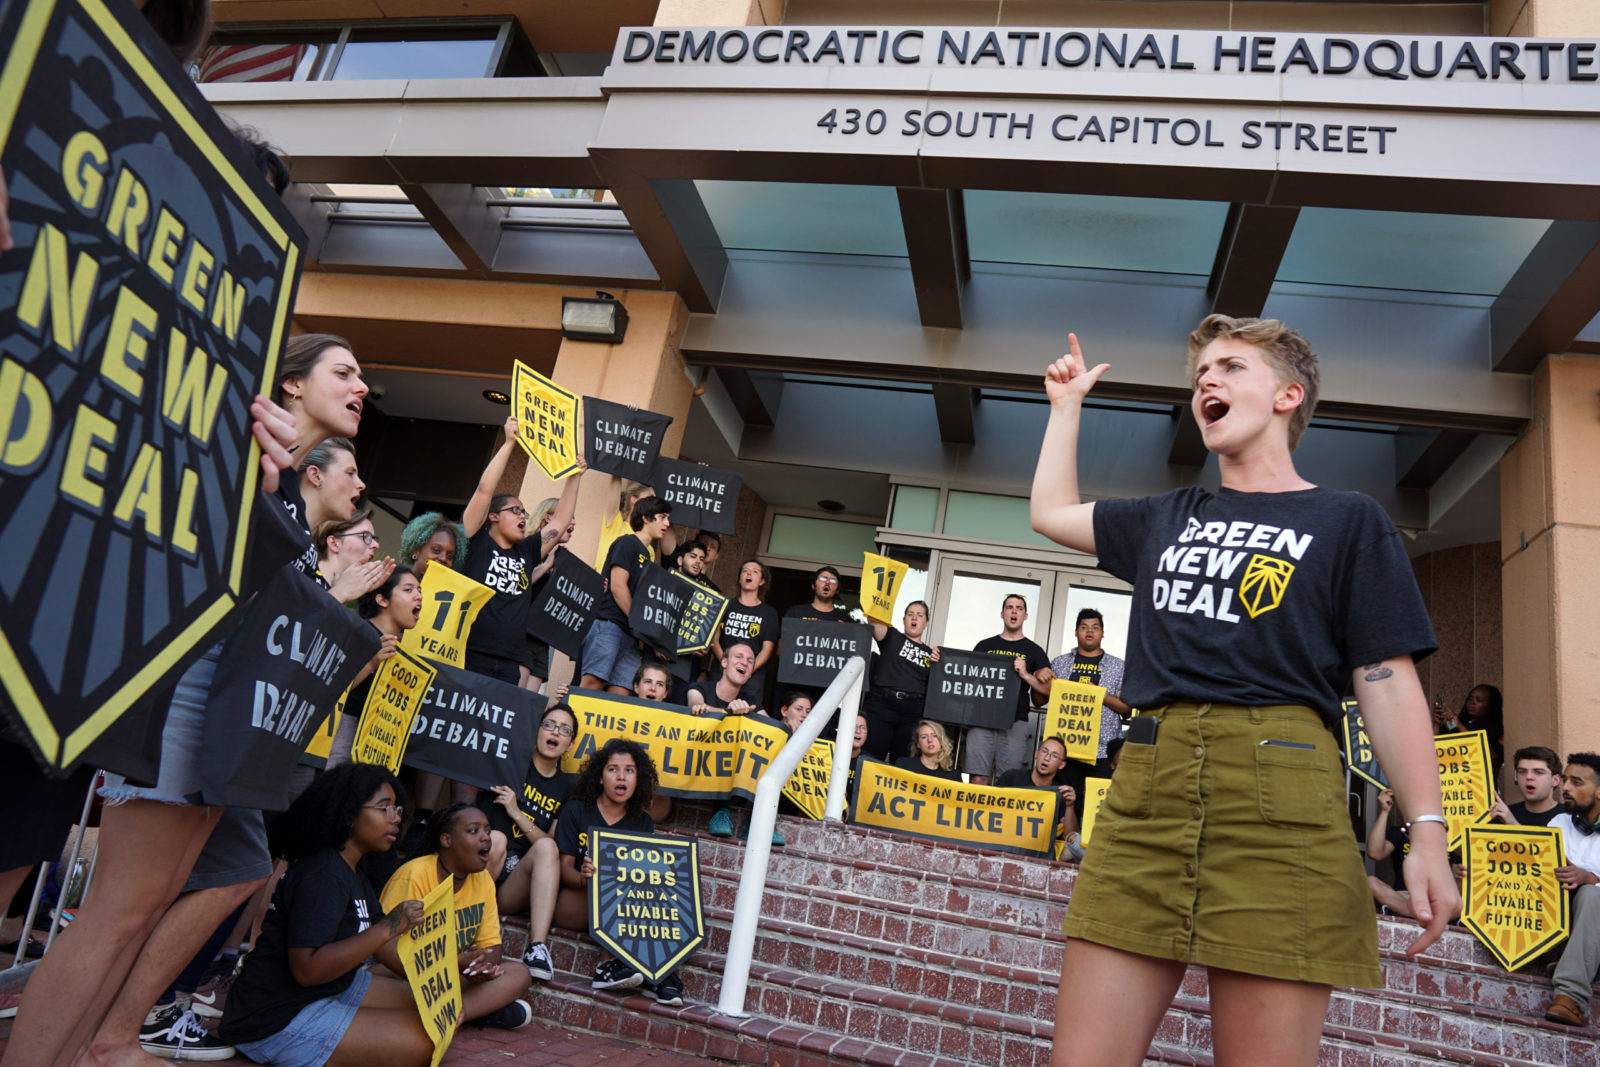 A Sunrise organizer leads a large group of fellow Sunrisers in a song while they occupy the entrance to the DNC headquarters in DC.